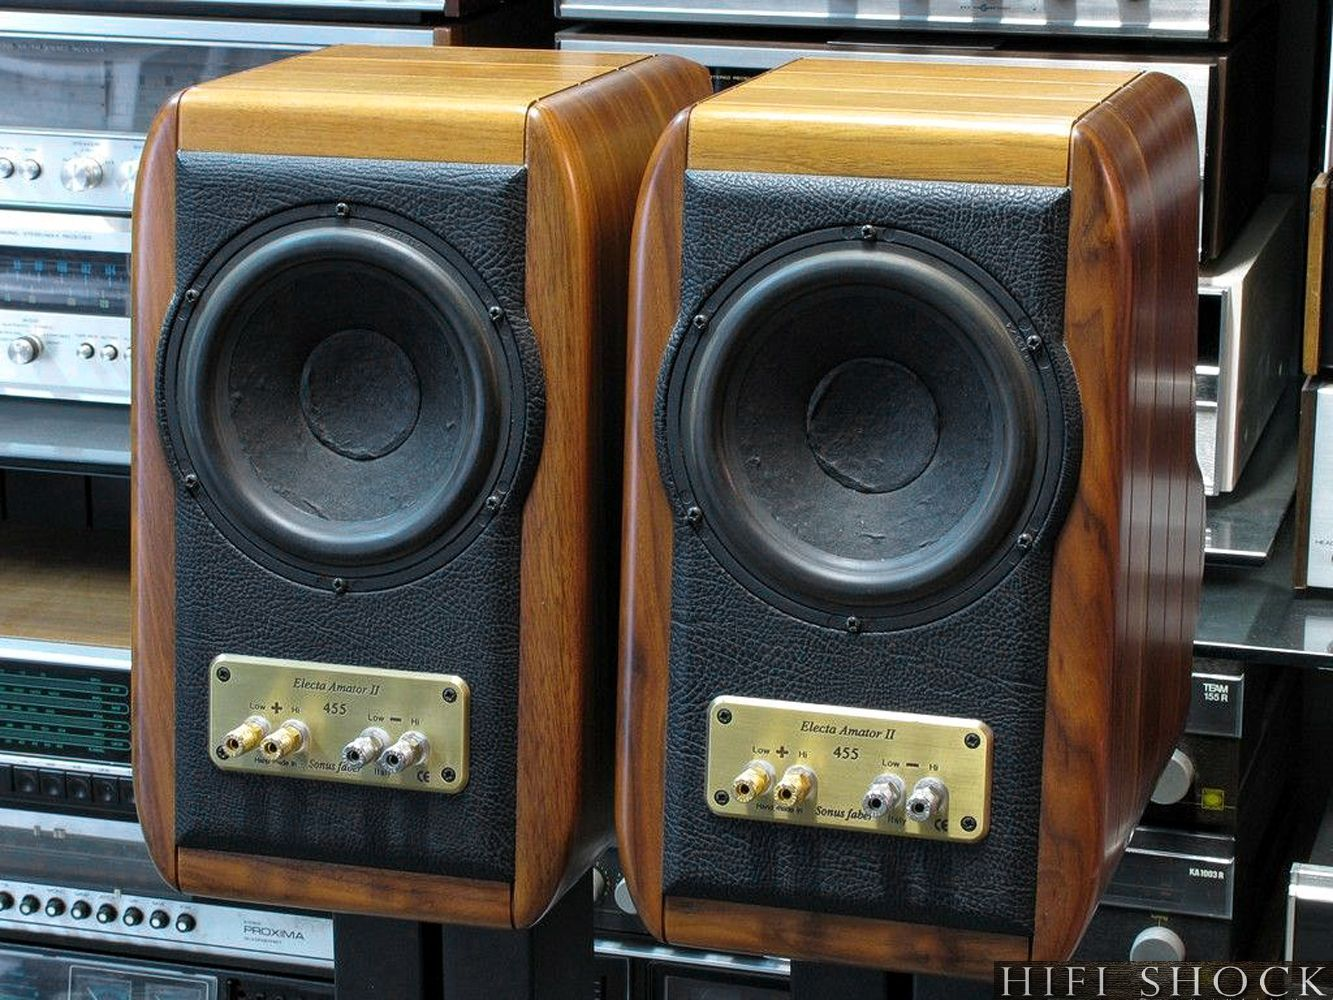 Electa Amator 2 >> Sonus Faber Electa Amator II | Audio Exchange